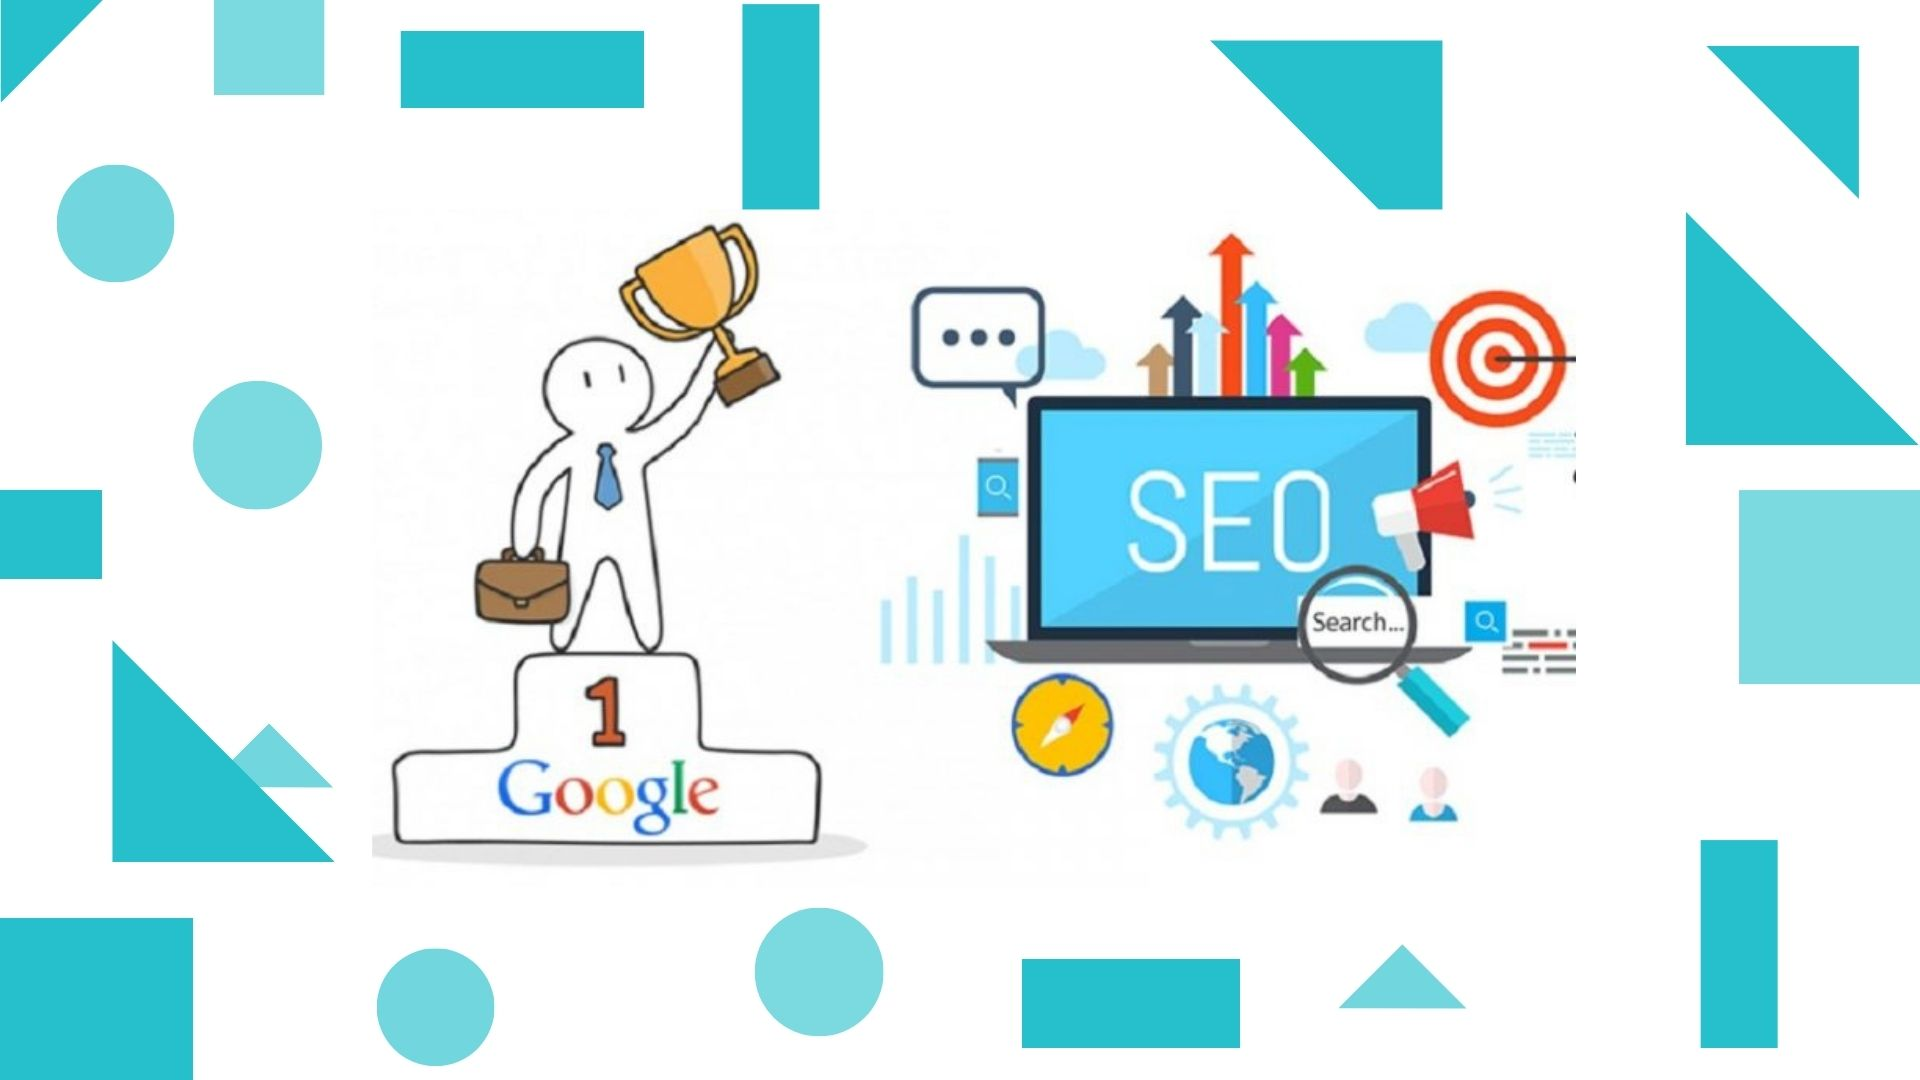 I will build fixed high quality seo backlinks for google first page ranking